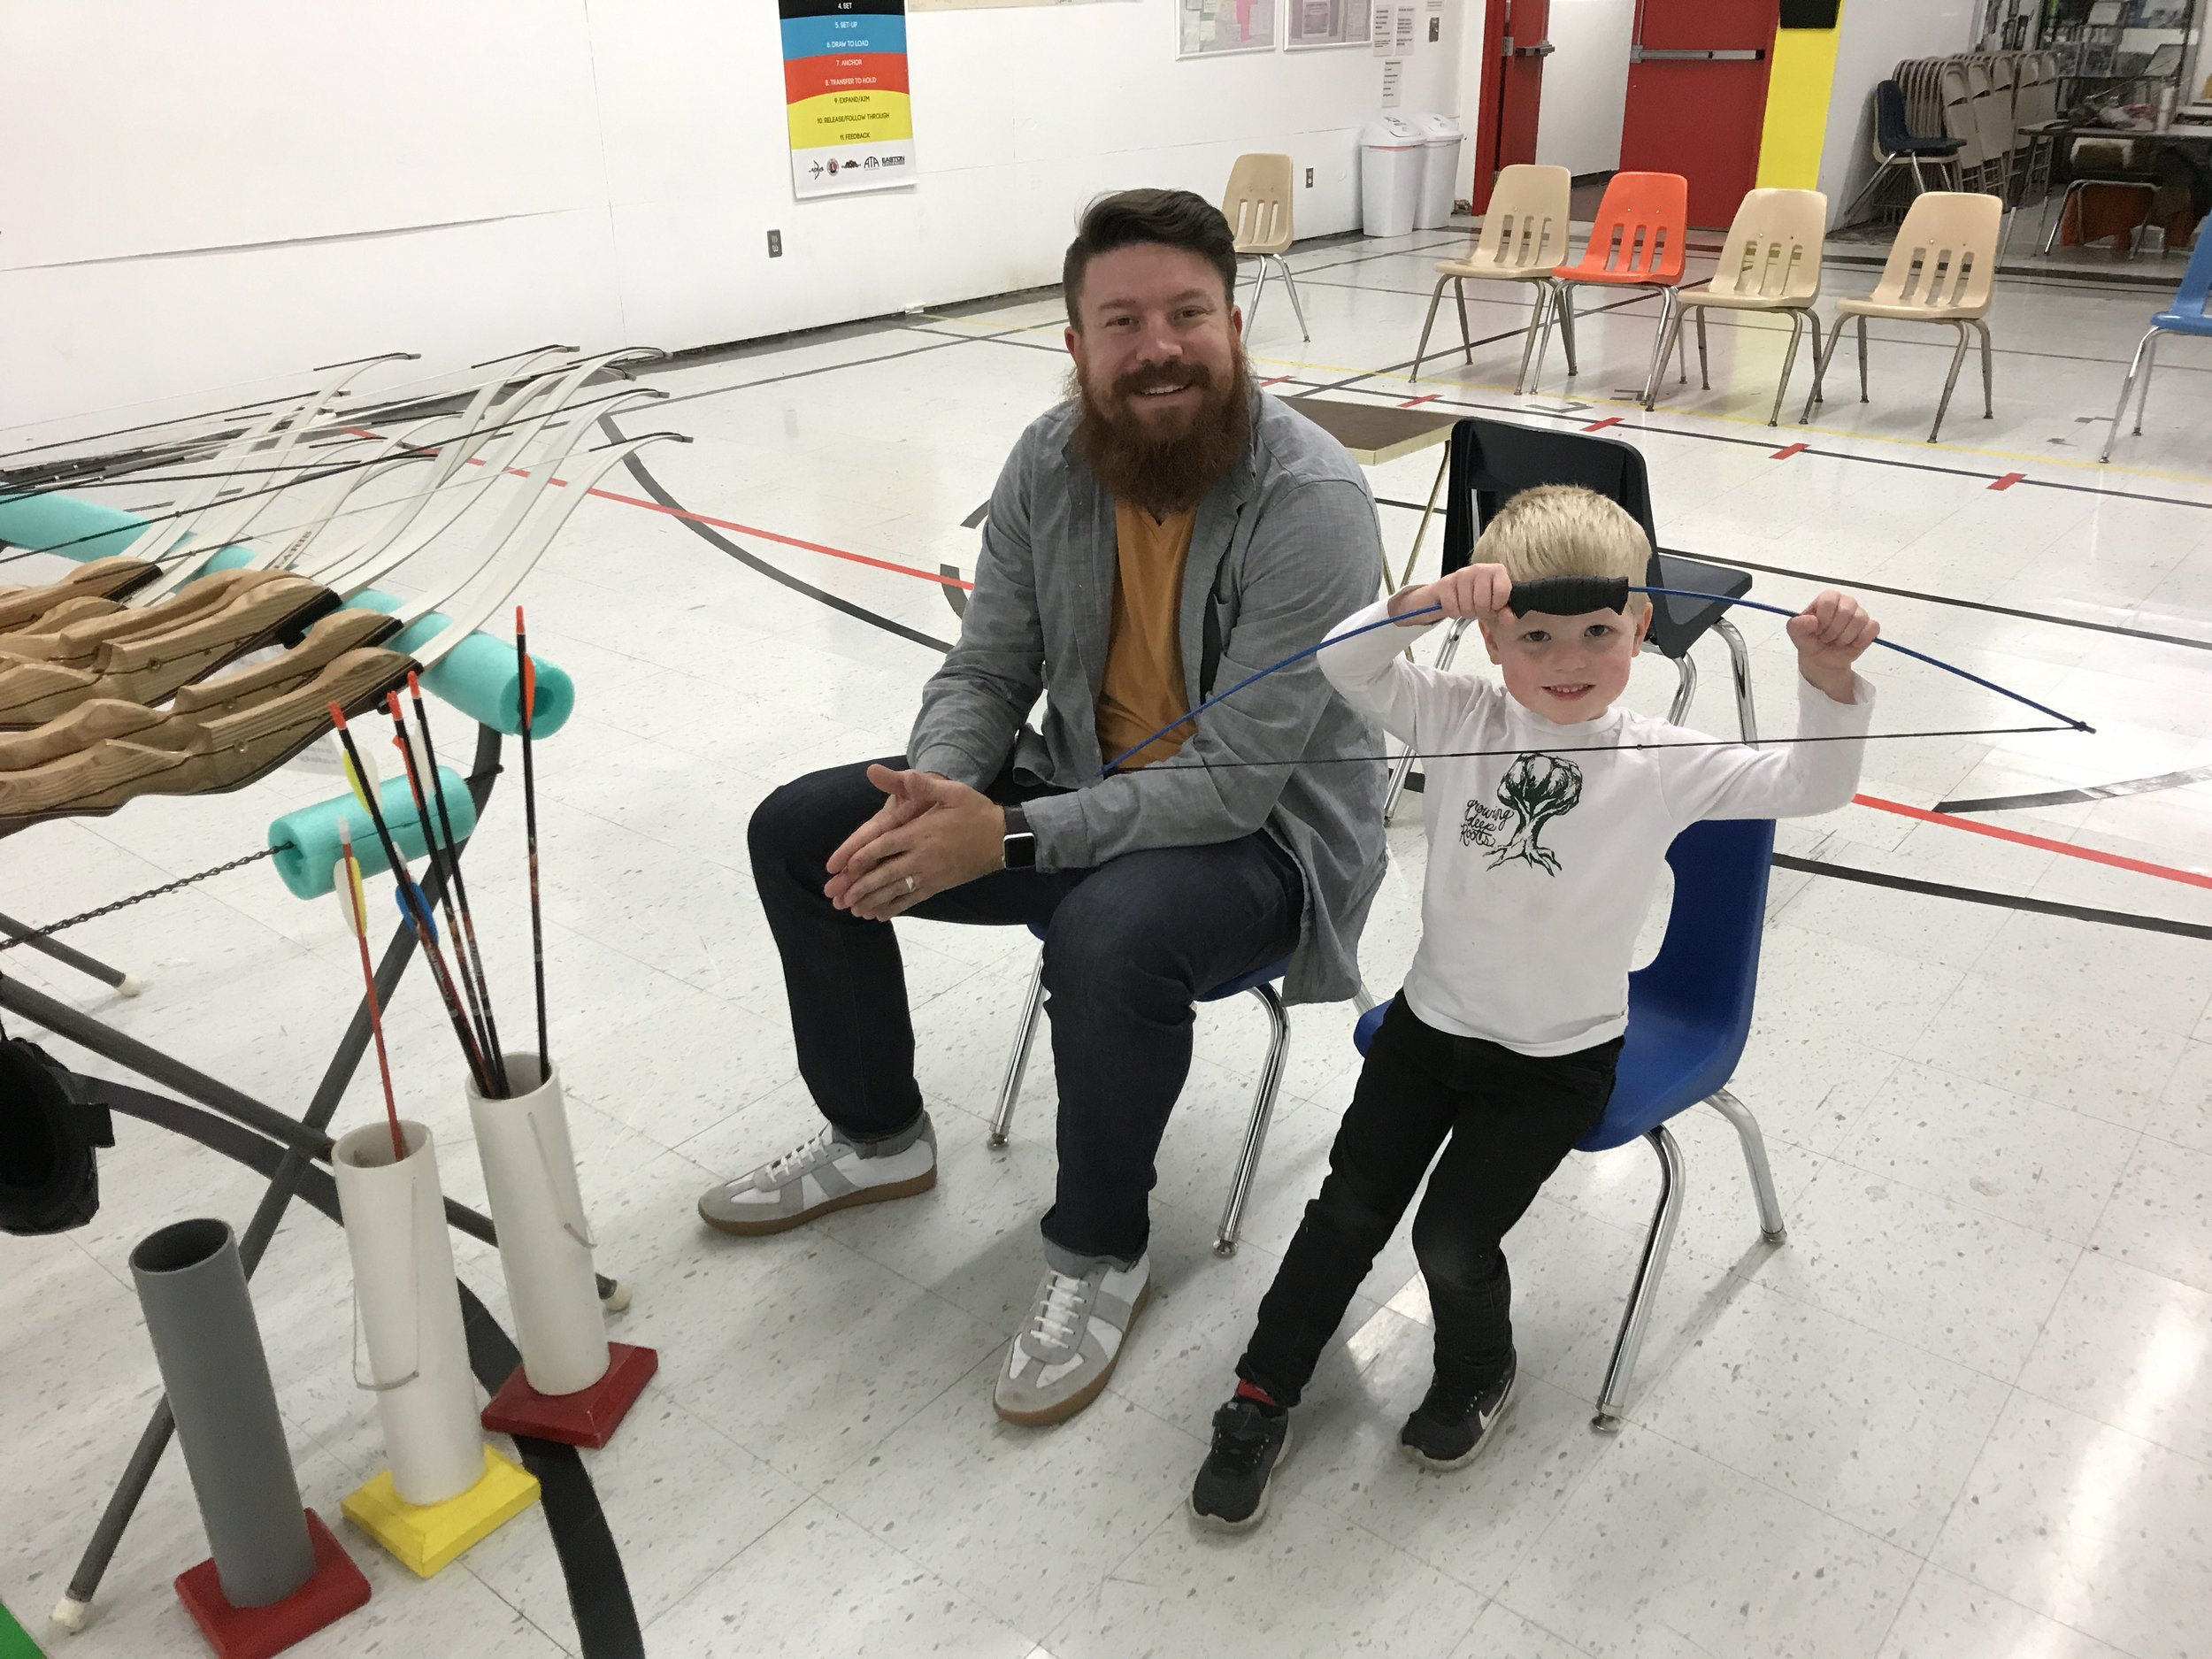 Toledo Photographer and Nephew at Archery Session